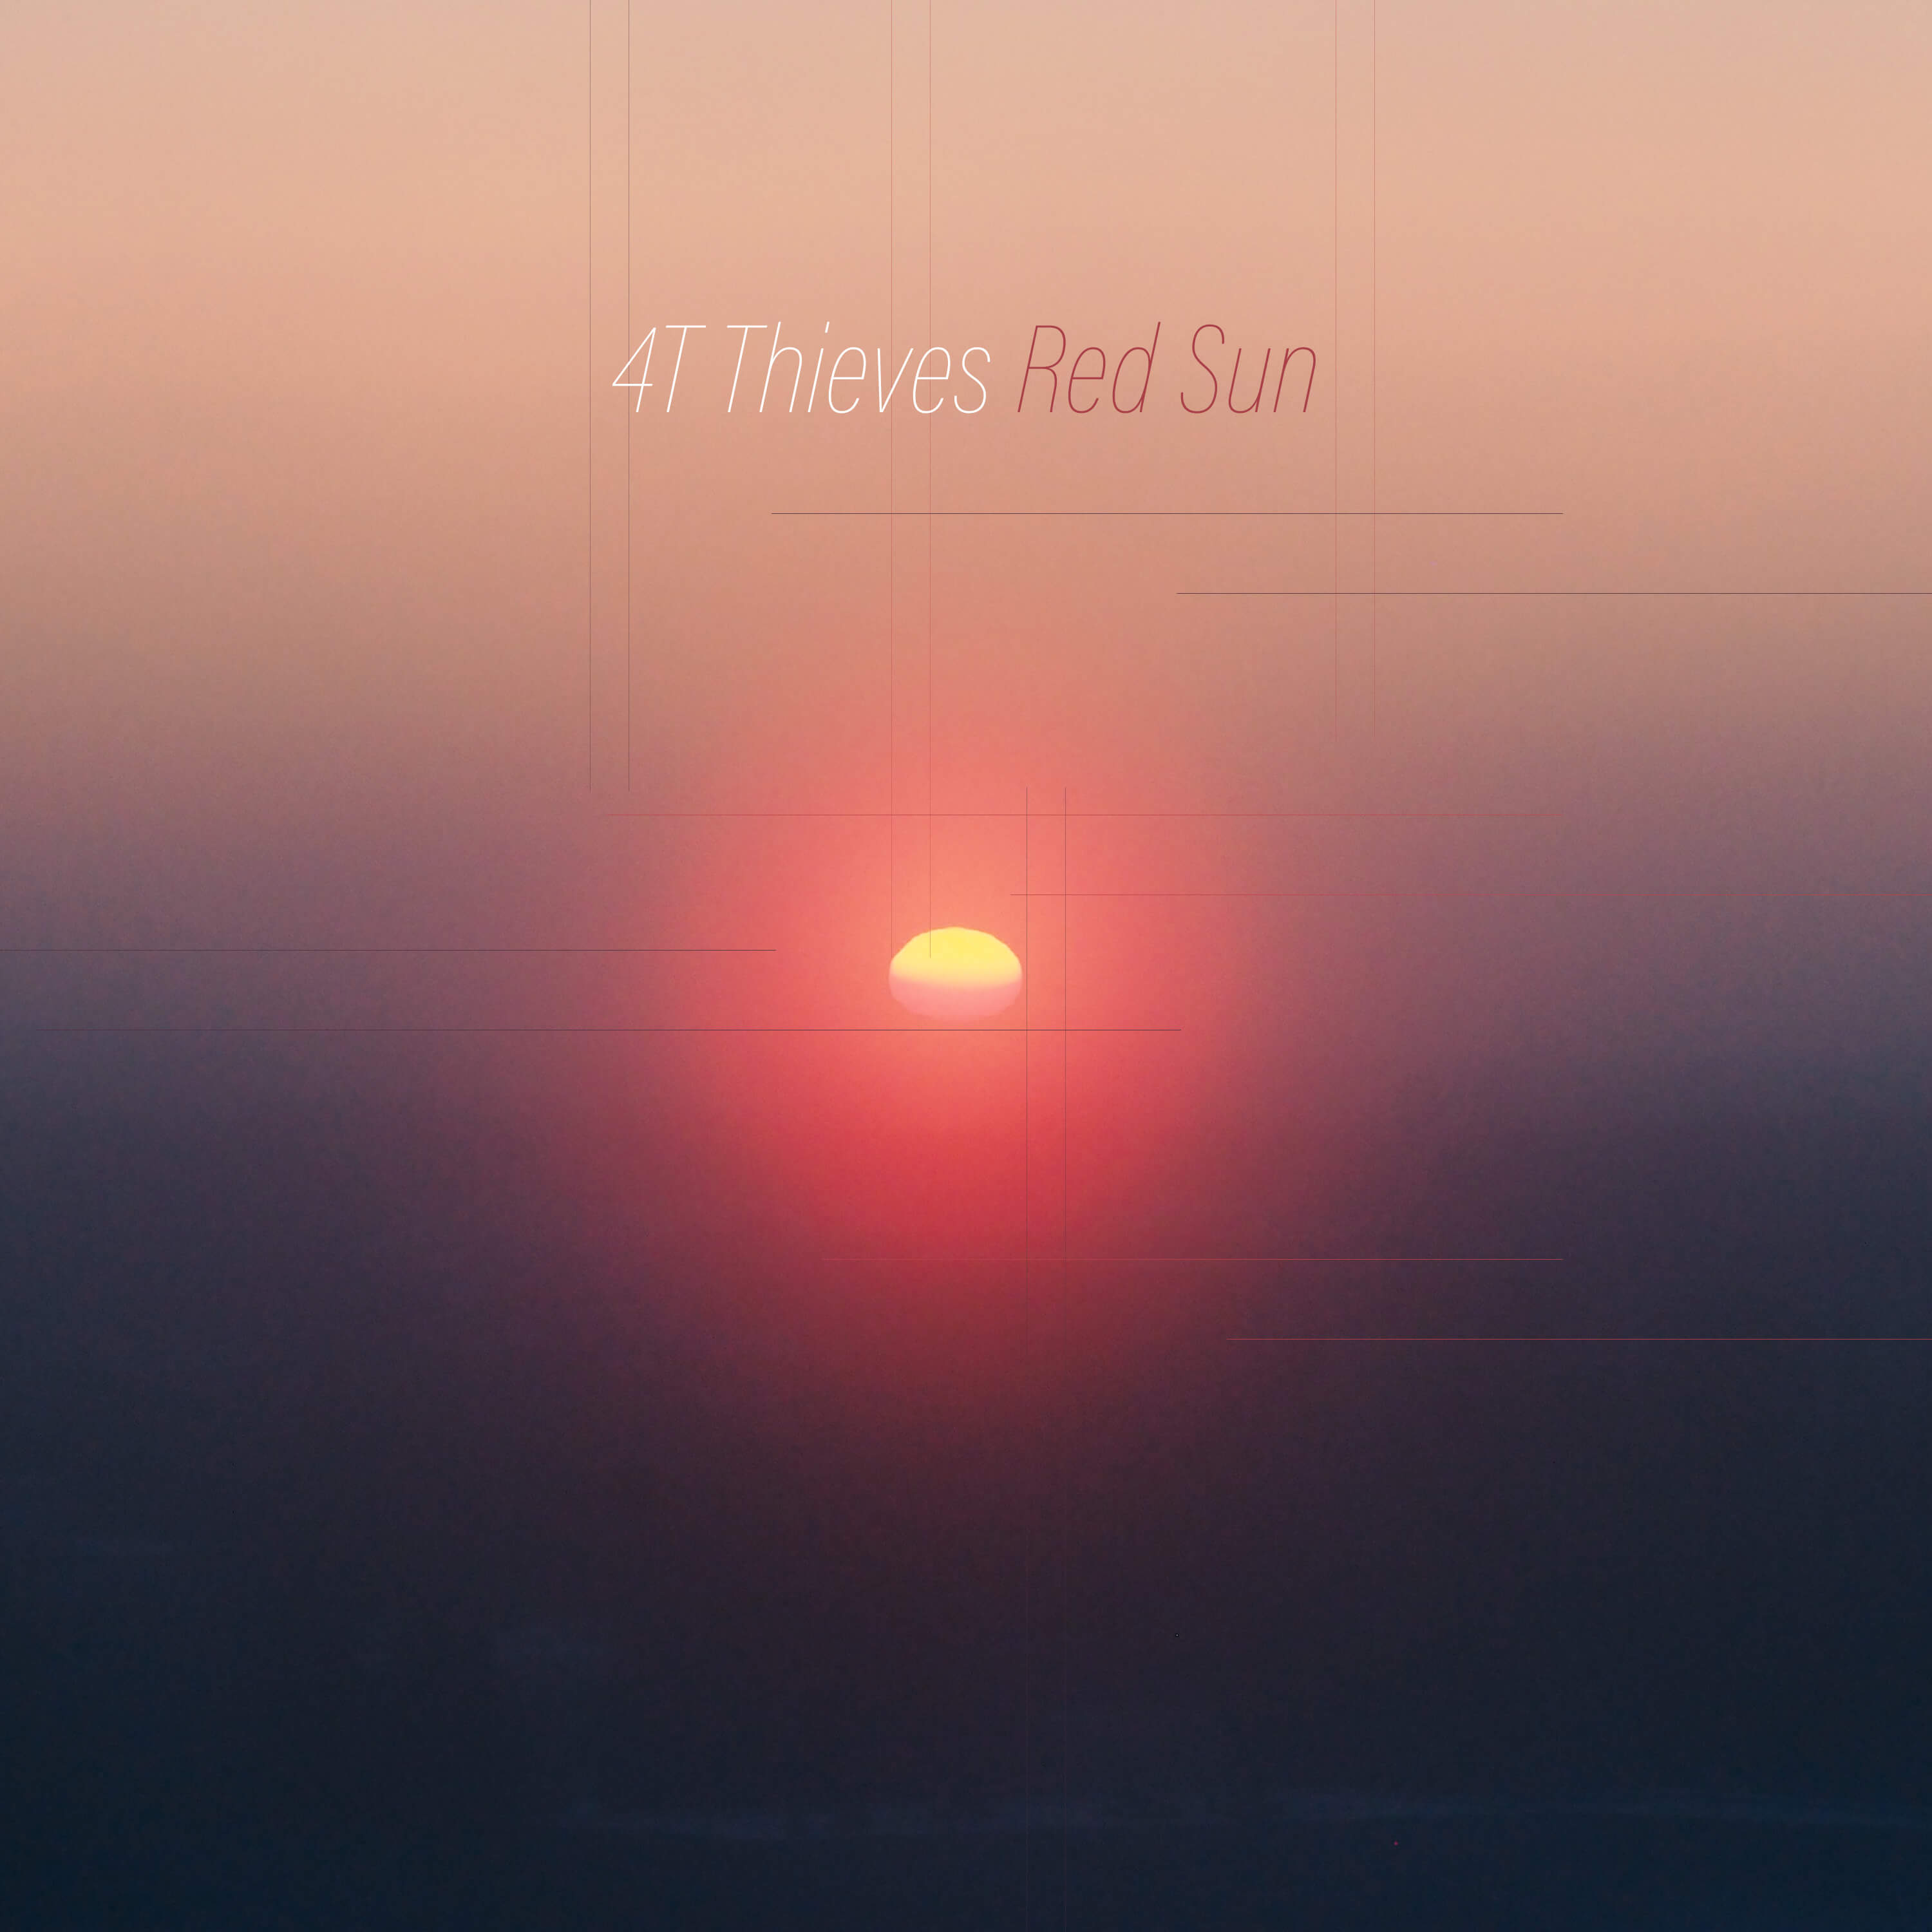 Red Sun - 4T Thieves